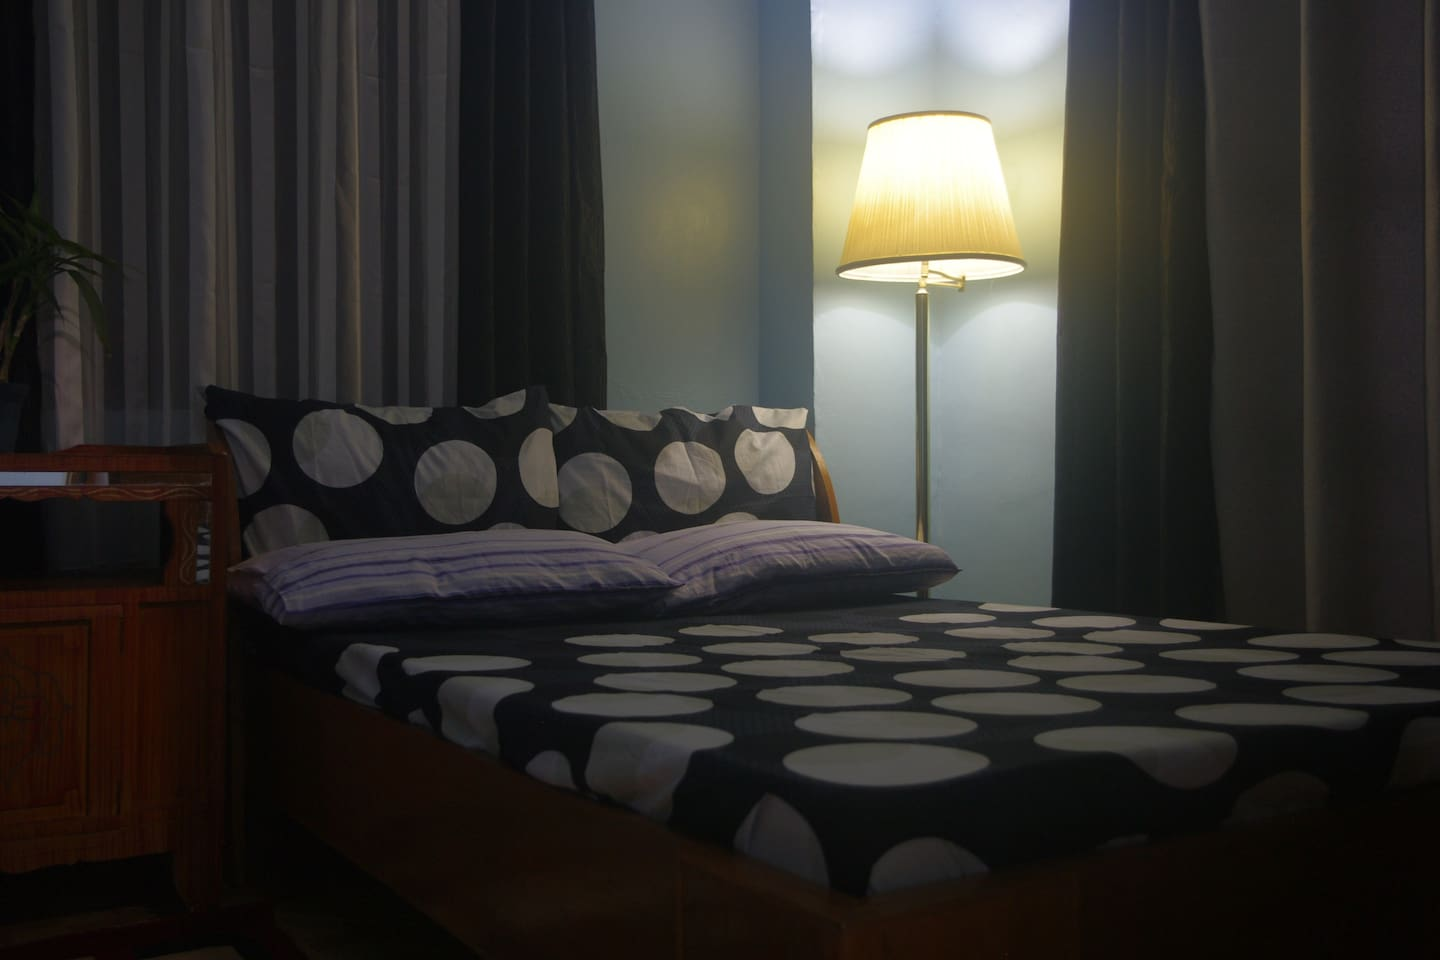 Full sized bed perfect for couples who wish to cuddle in a cold climate ;)